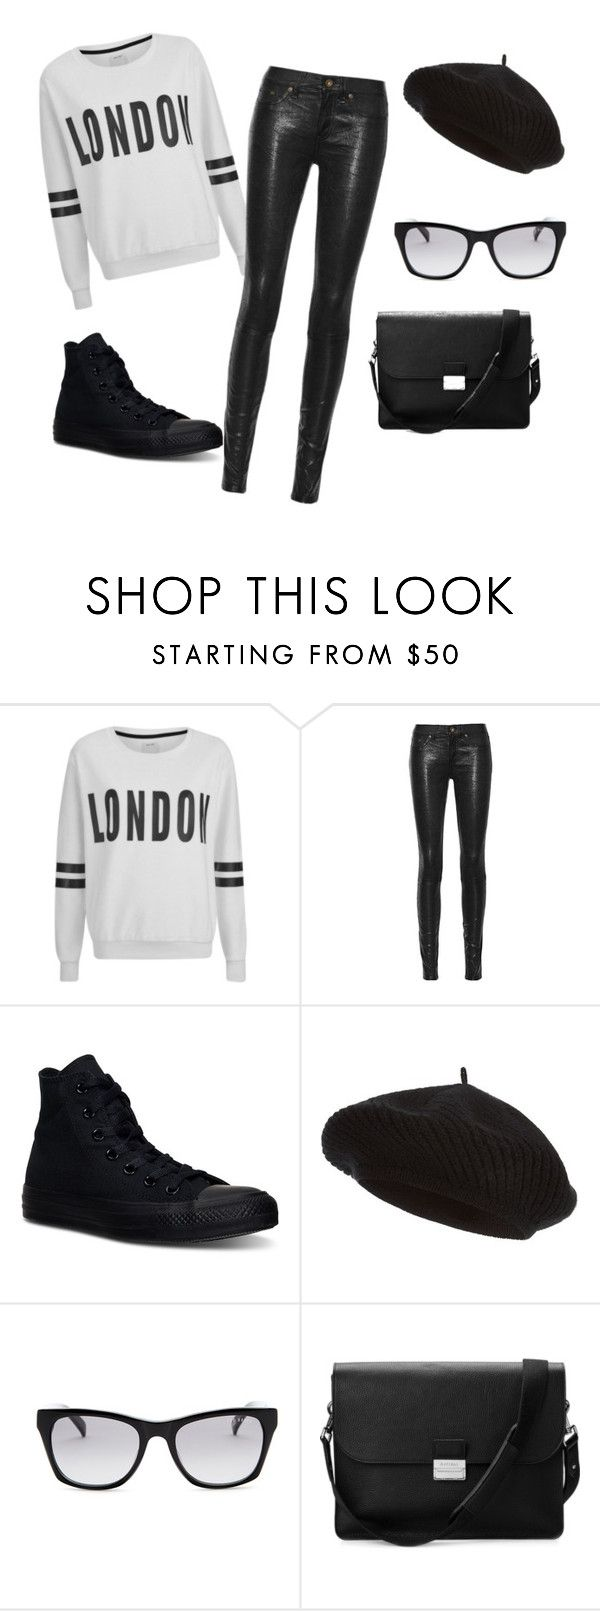 """L O N D O N"" by kyra07 ❤ liked on Polyvore featuring ONLY, rag & bone/JEAN, Converse, Harrods, Ted Baker and Aspinal of London"